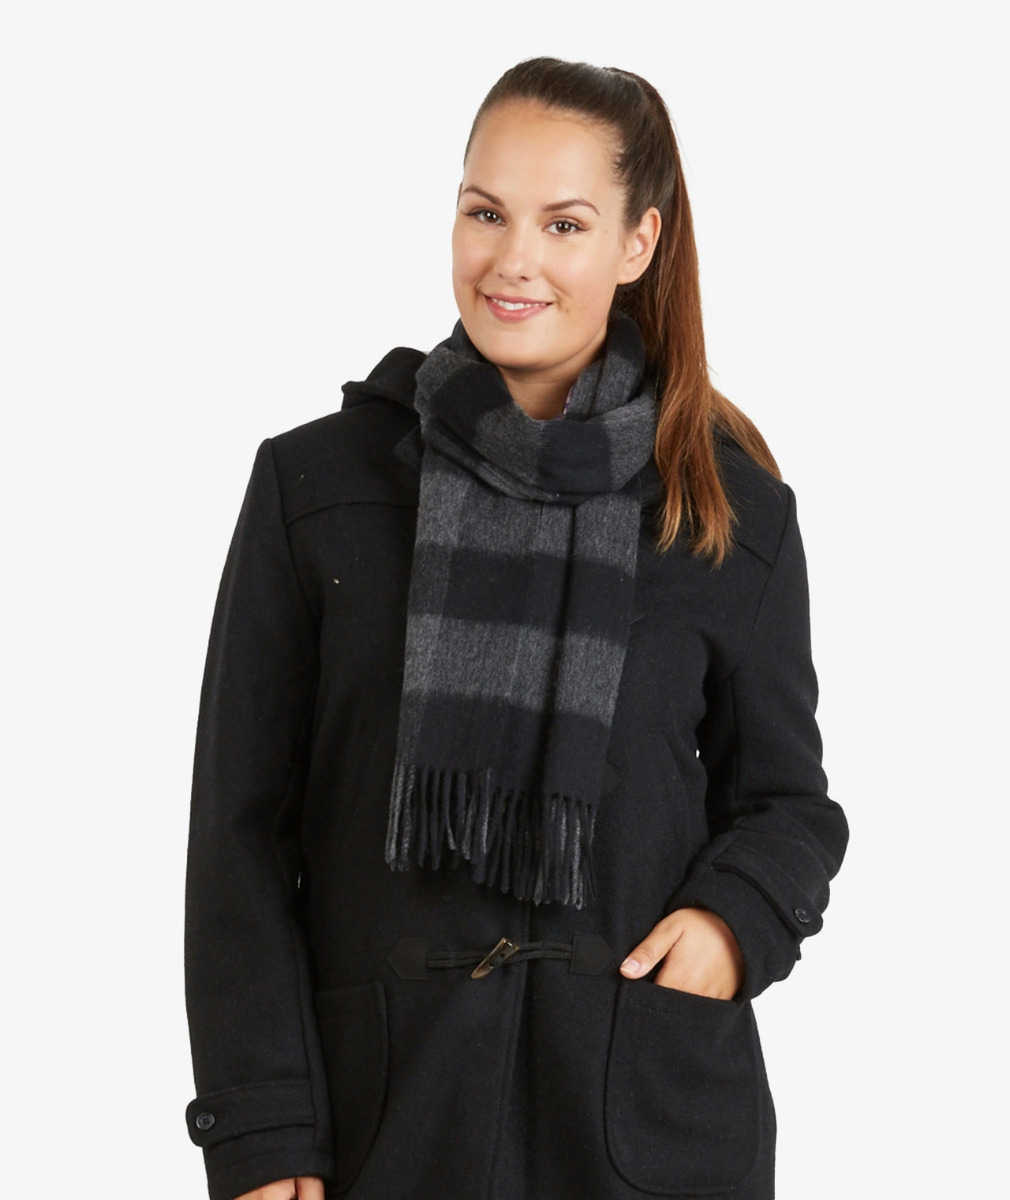 Swanndri Unisex 100% Wool Scarfie in Charcoal/Black Check